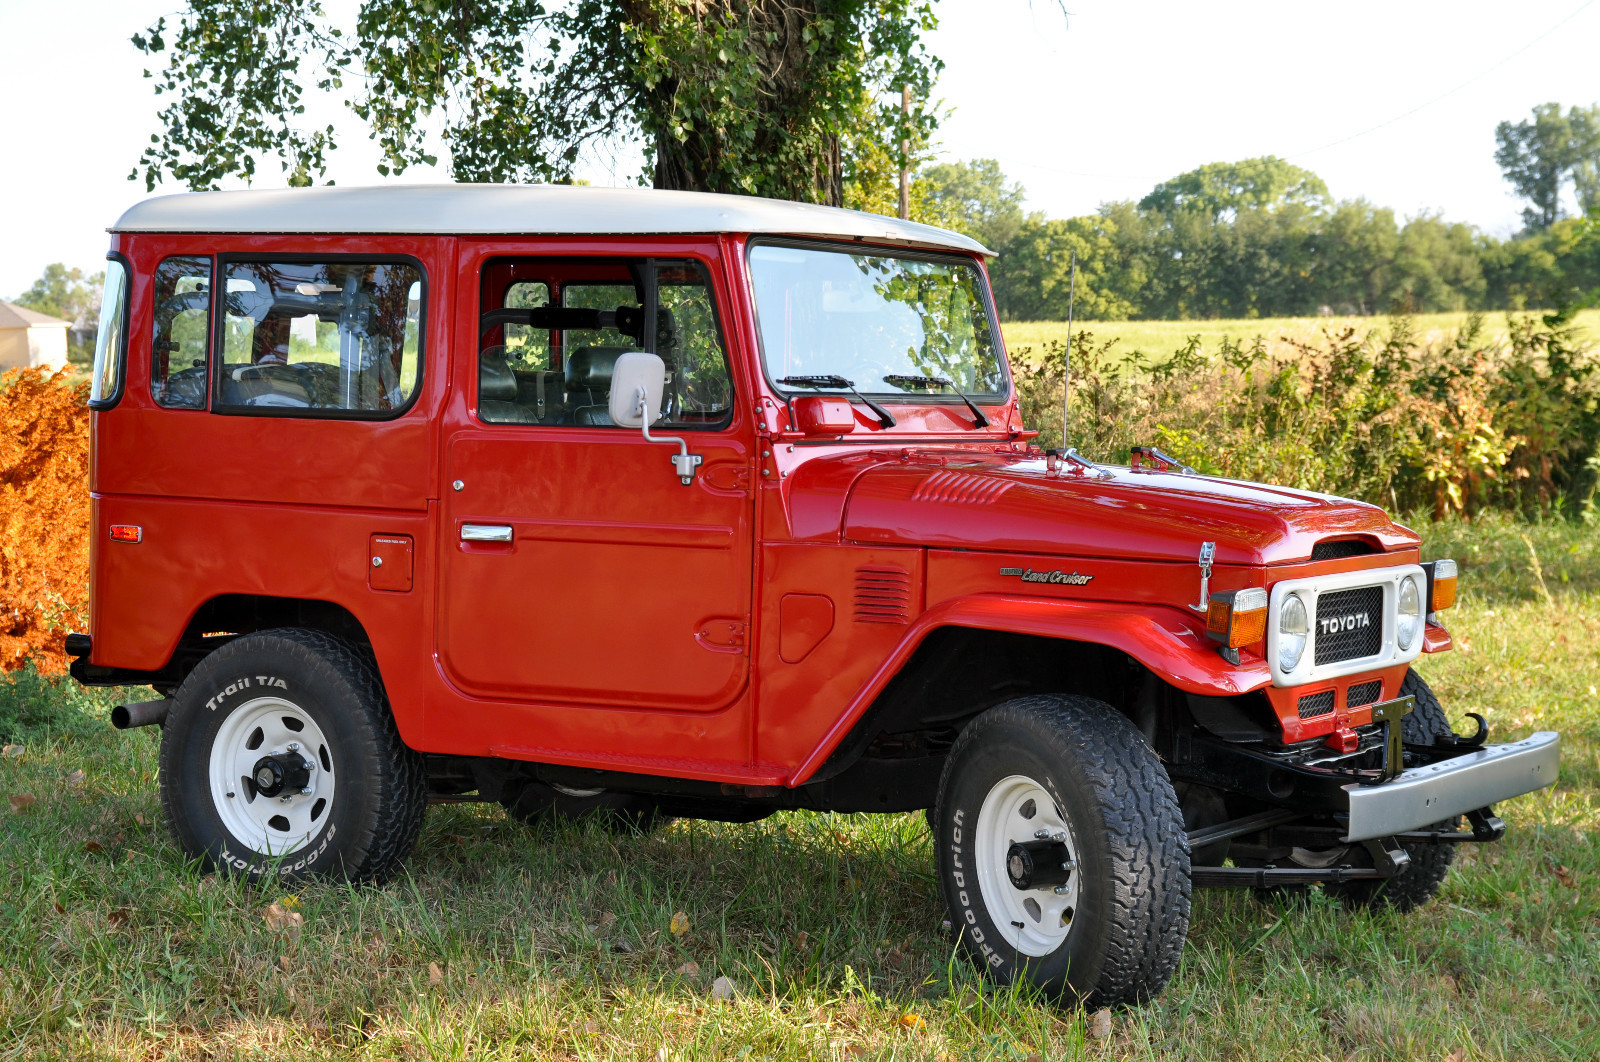 1983 toyota land cruiser red fj40 restored 4x4 c land cruiser of the day. Black Bedroom Furniture Sets. Home Design Ideas